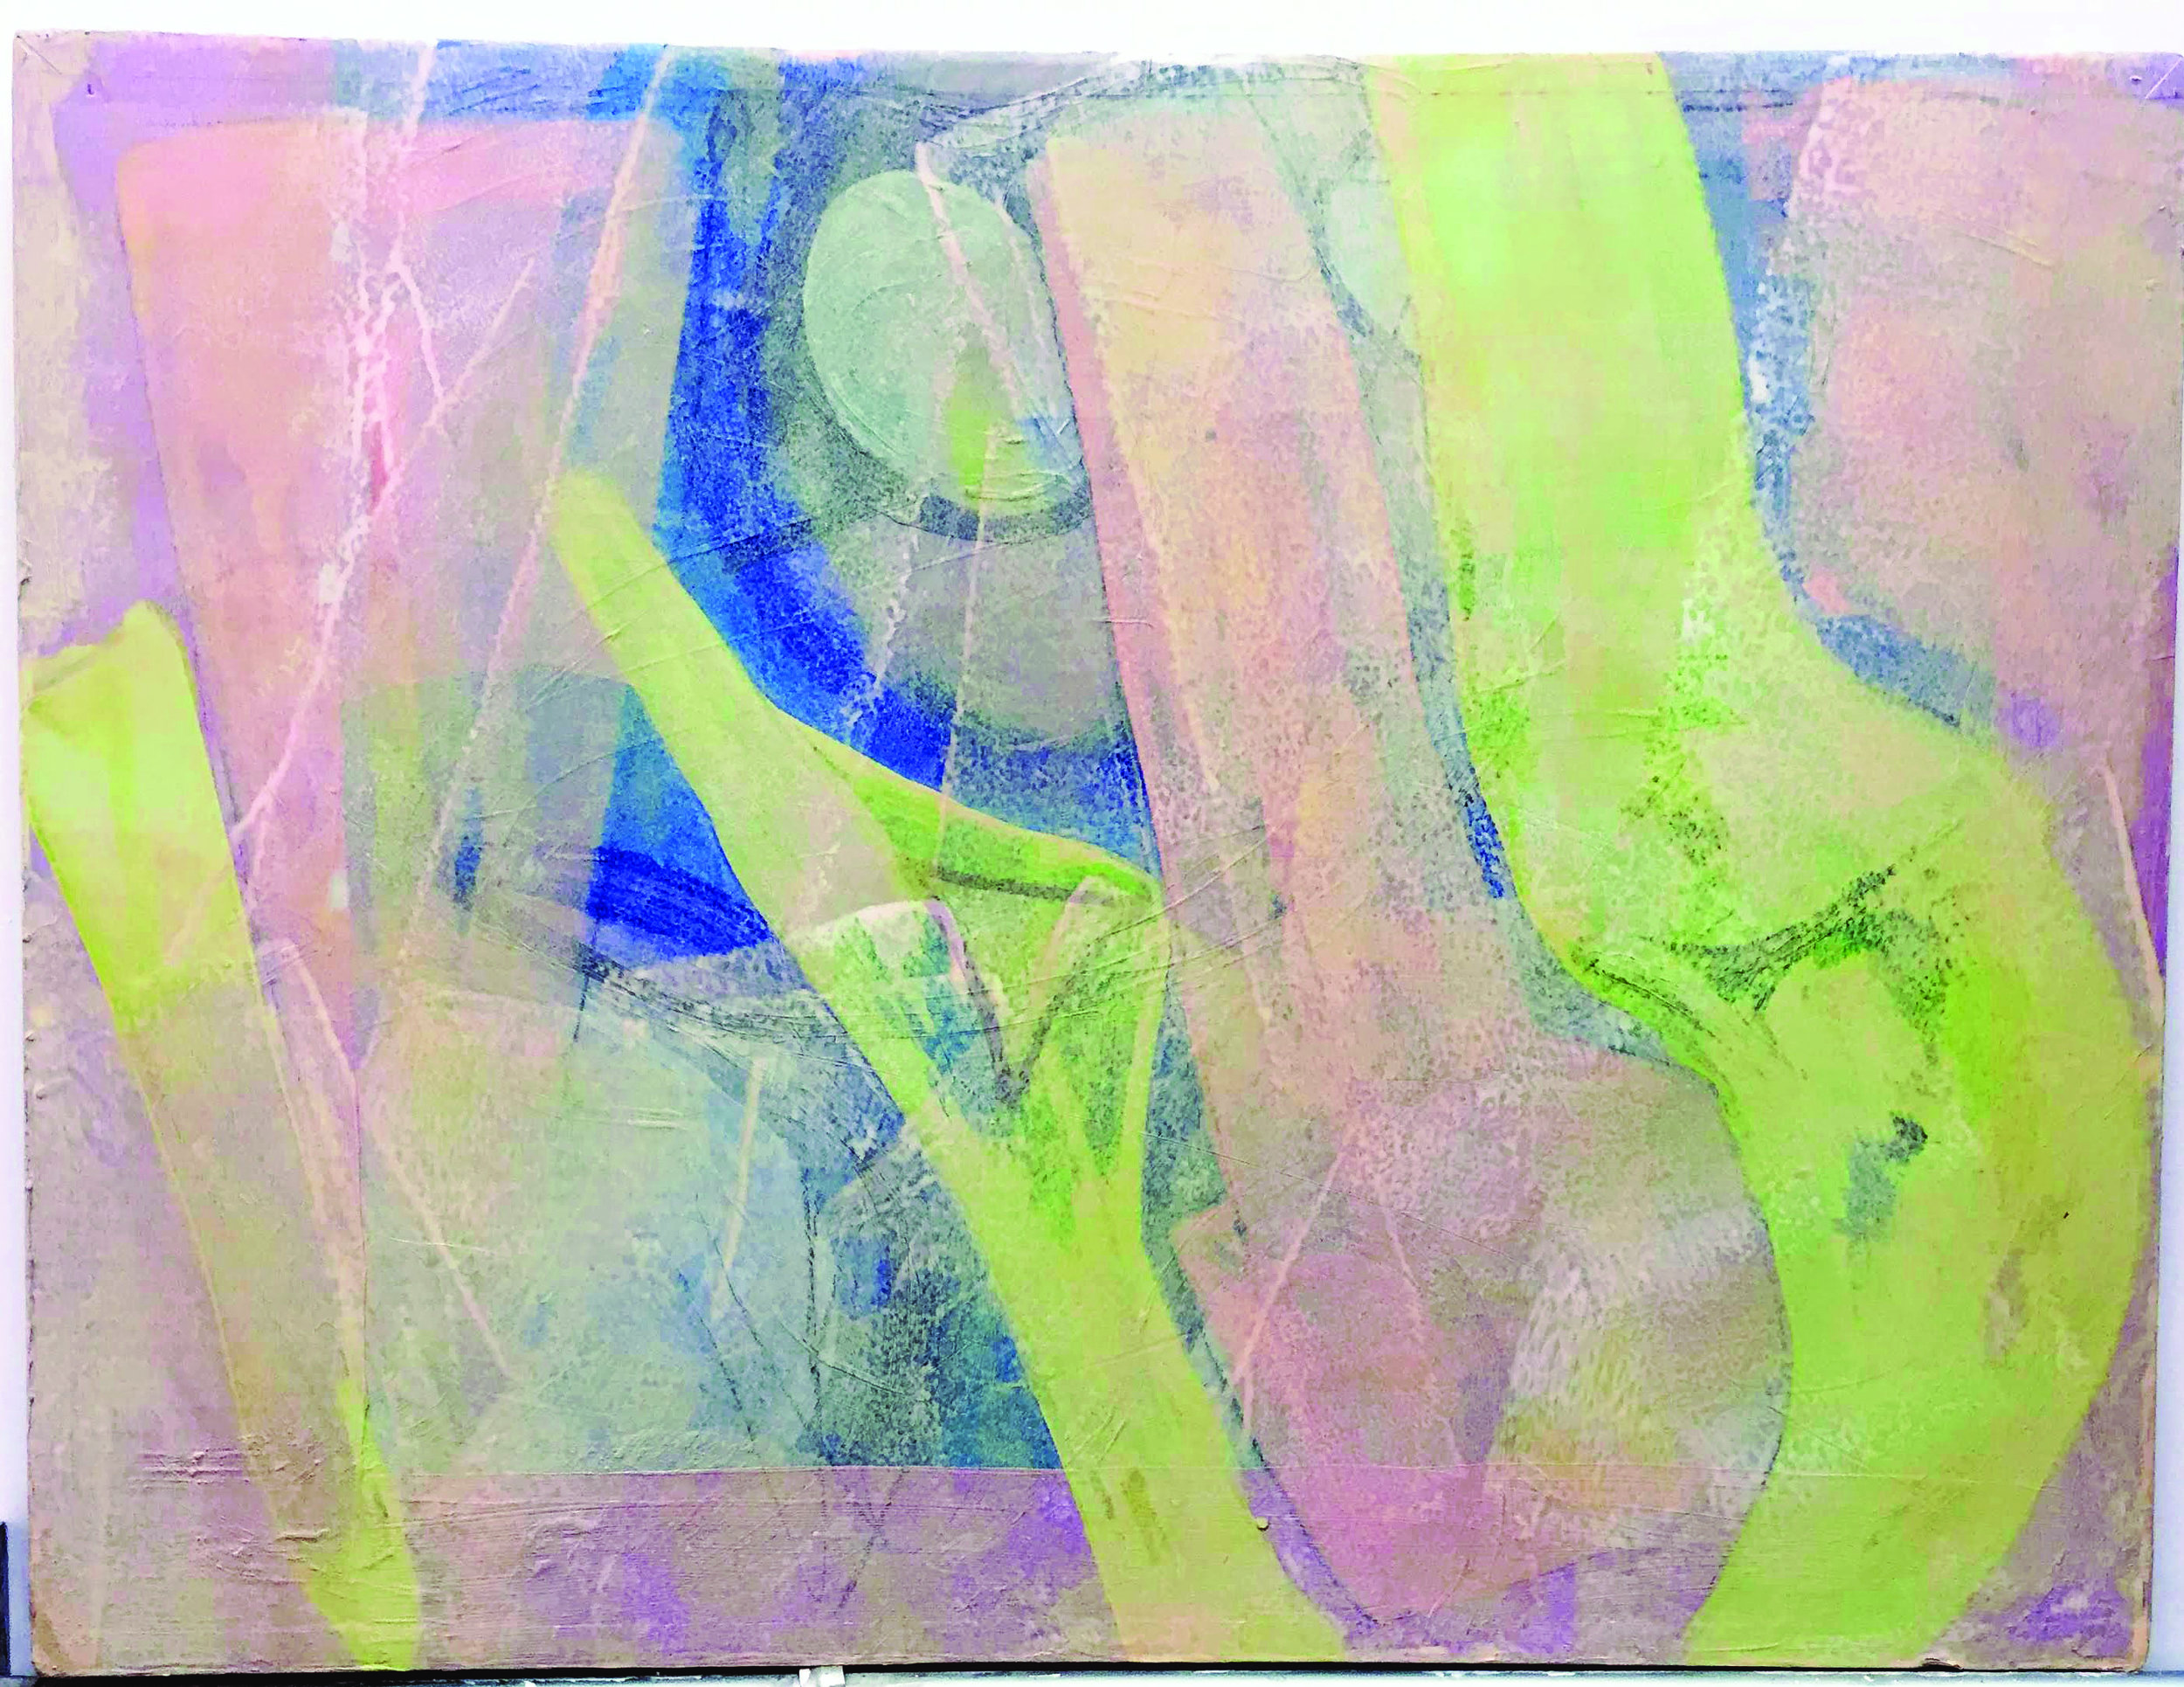 Form and Color #8